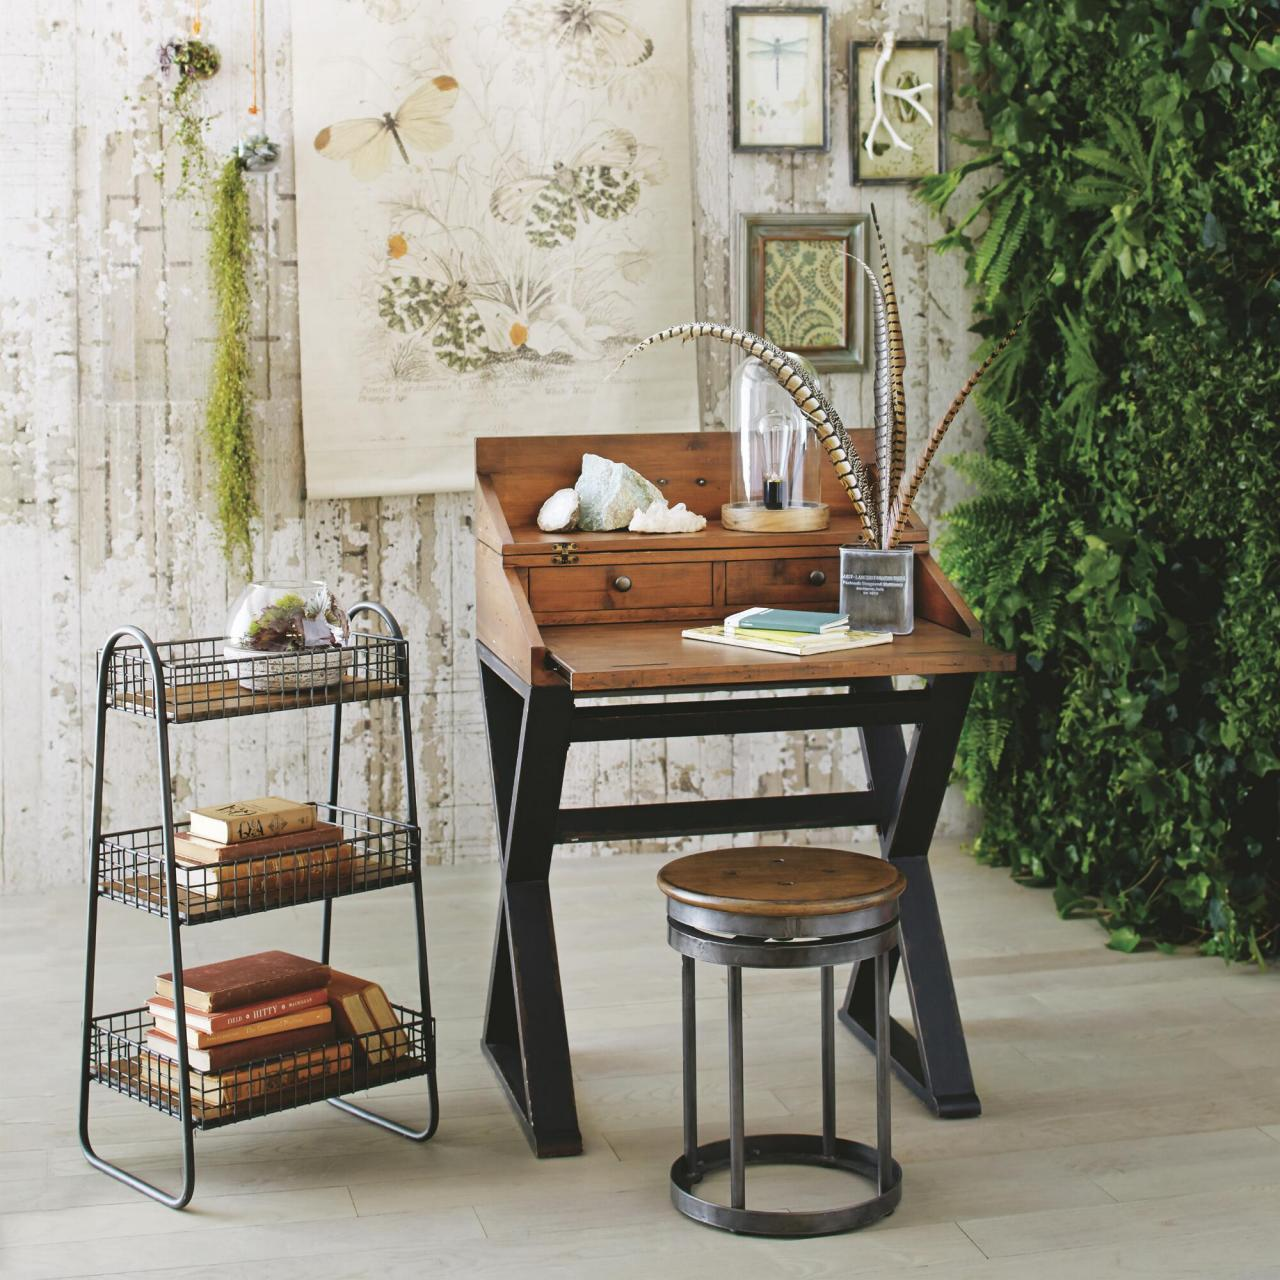 12 Tiny Desks For Home Offices HGTVs Decorating